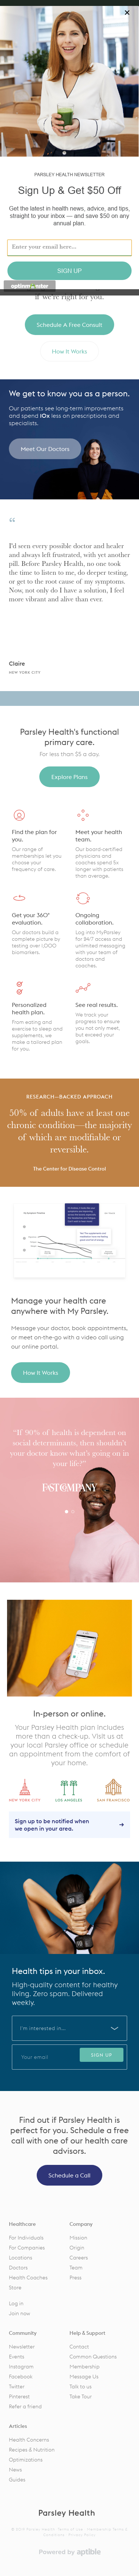 Example of Design for Health, Nutrition, Mobile Landing Page by parsleyhealth.com | Mobile Landing Page Design